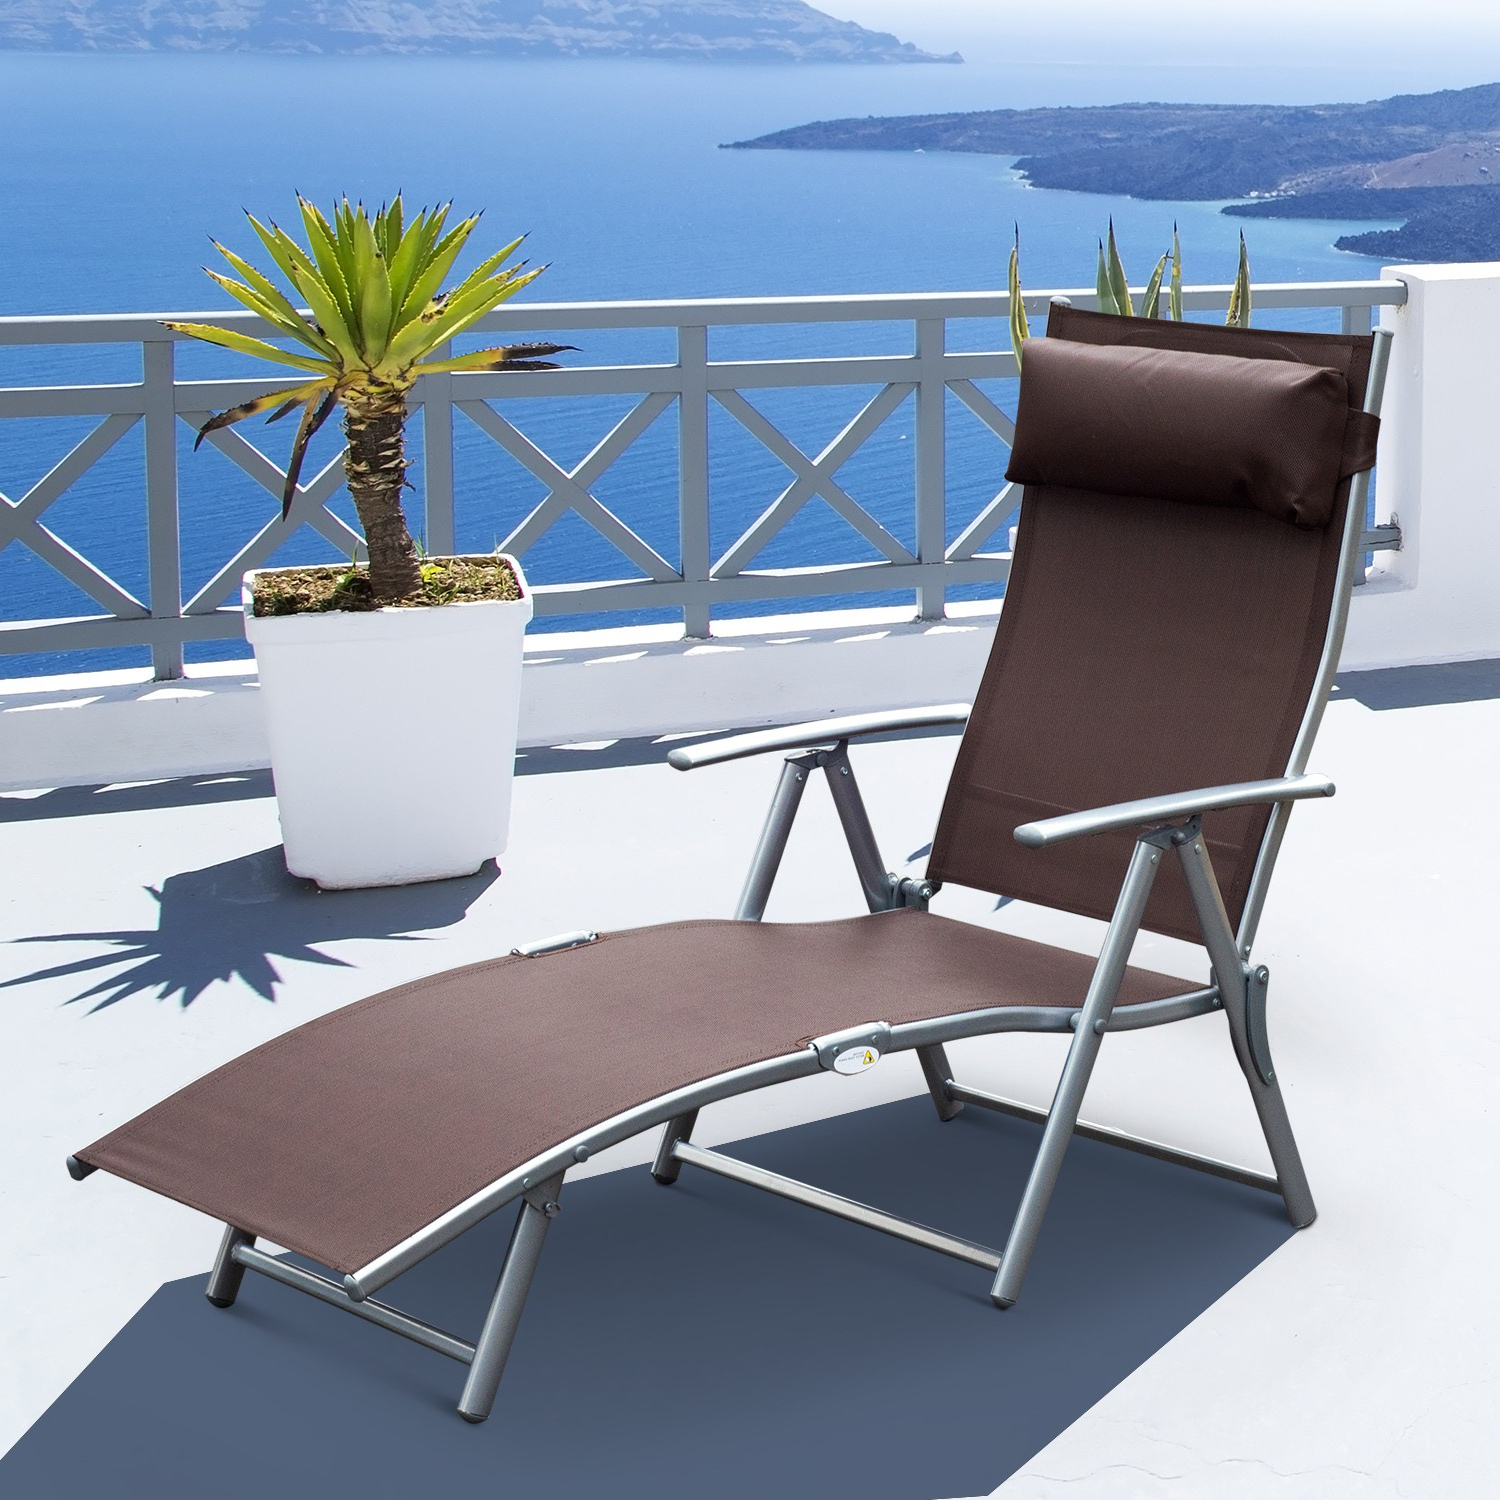 Steel Sling Fabric Outdoor Folding Chaise Lounges With Regard To Favorite Outsunny Steel Sling Fabric Outdoor Folding Chaise Lounge (View 14 of 25)